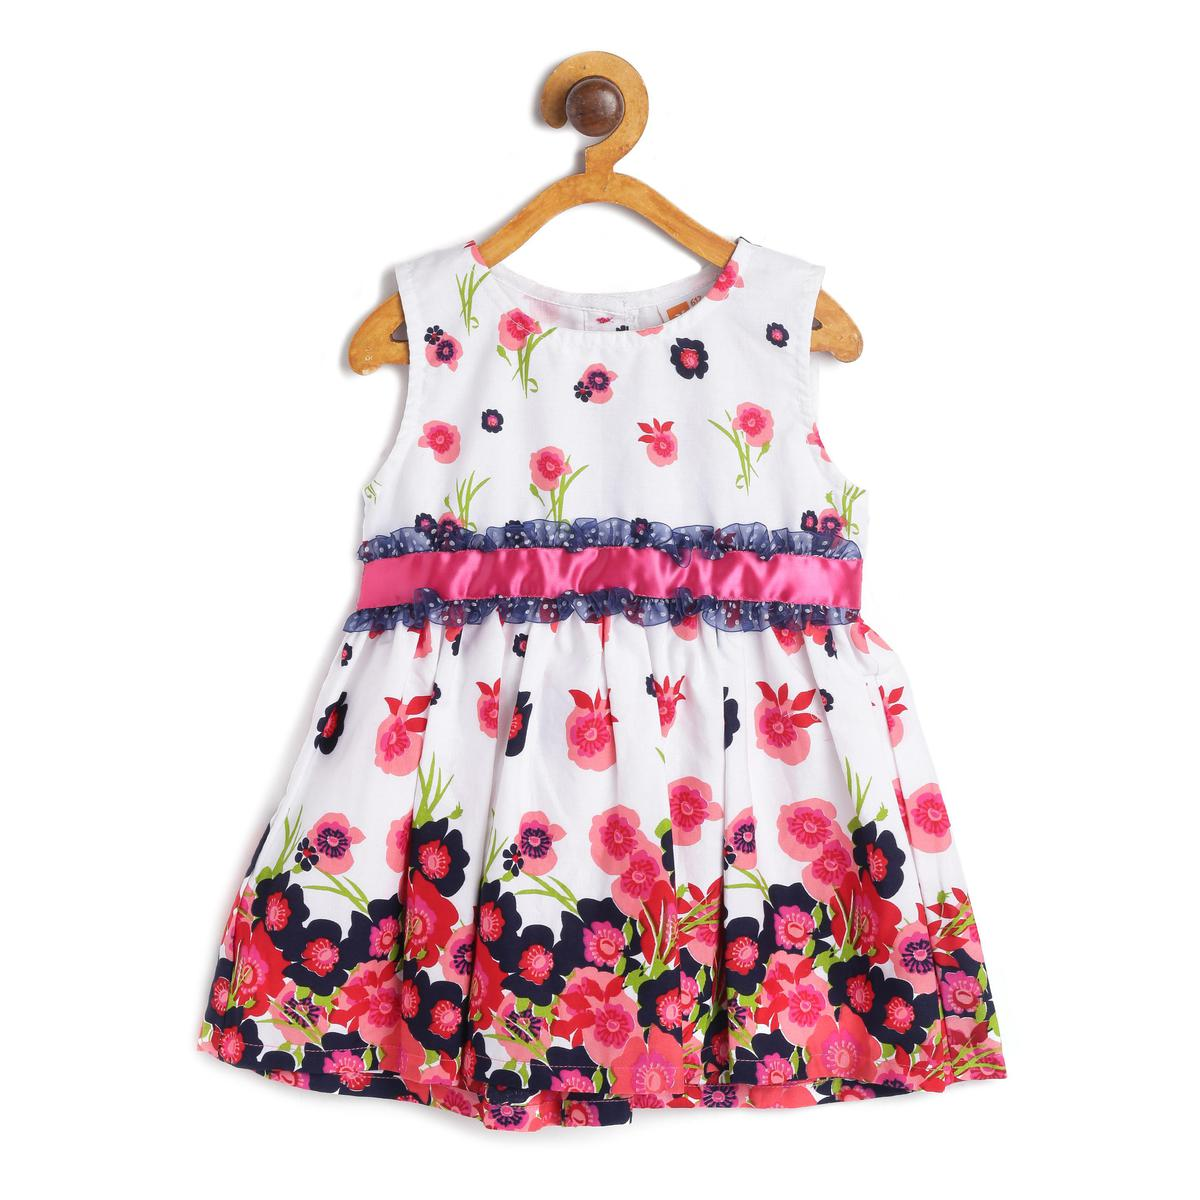 612 League - White Colored Floral Printed Dress For Baby Girls